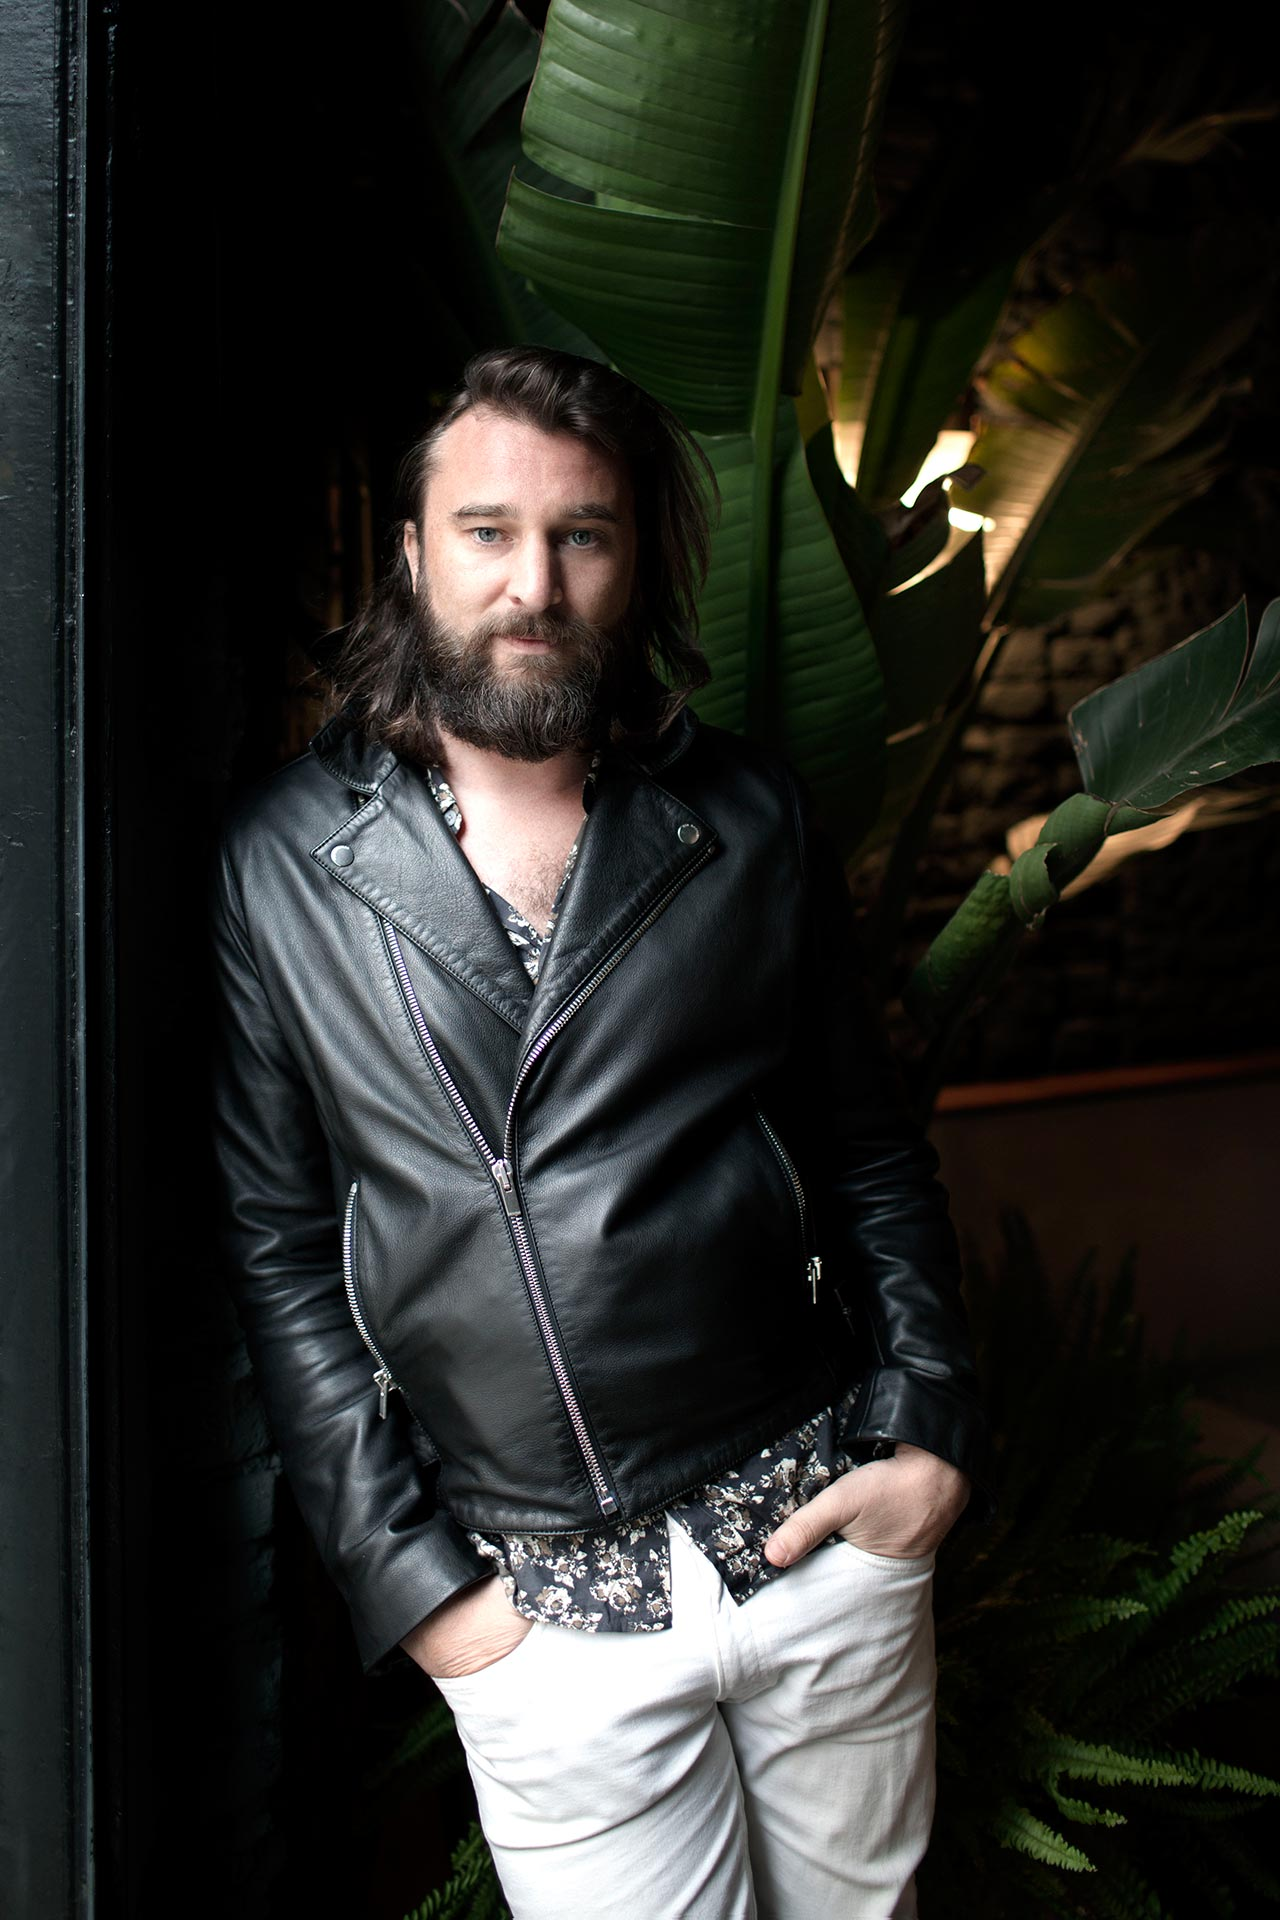 Nic Cester portrait. Photo by Alberto Strada.